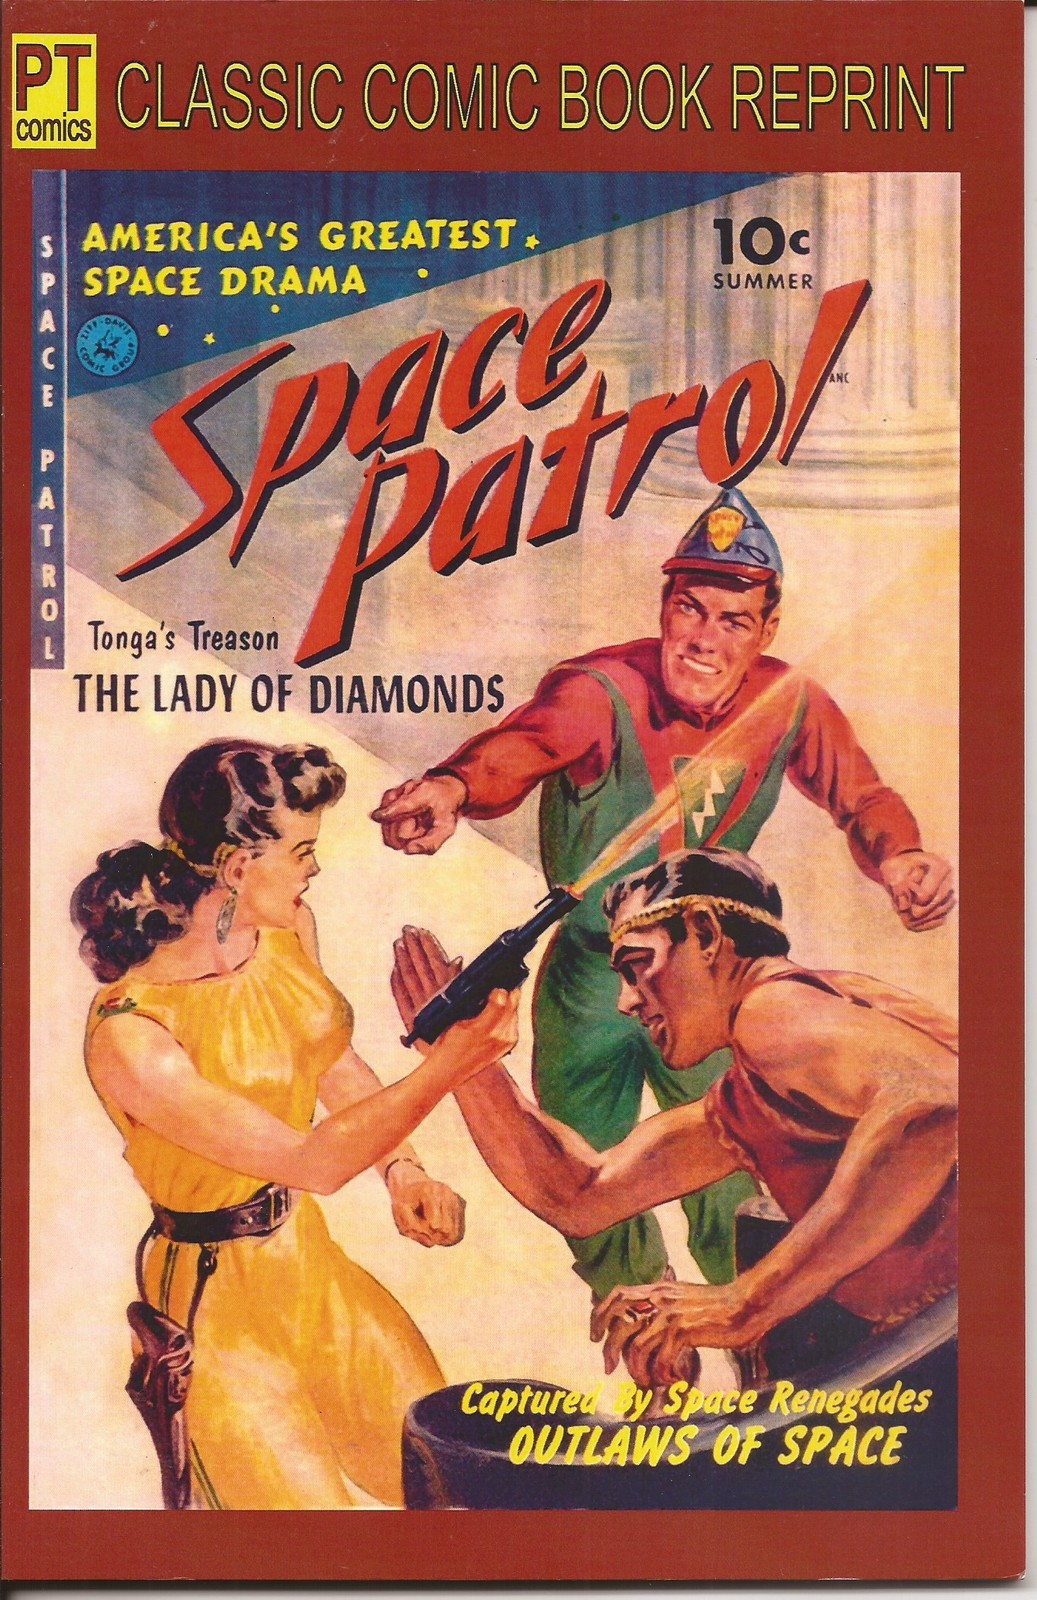 Primary image for PT Comics Classic Comic Book Reprint Space Patrol #1 & 2 Golden Age Sci-Fi